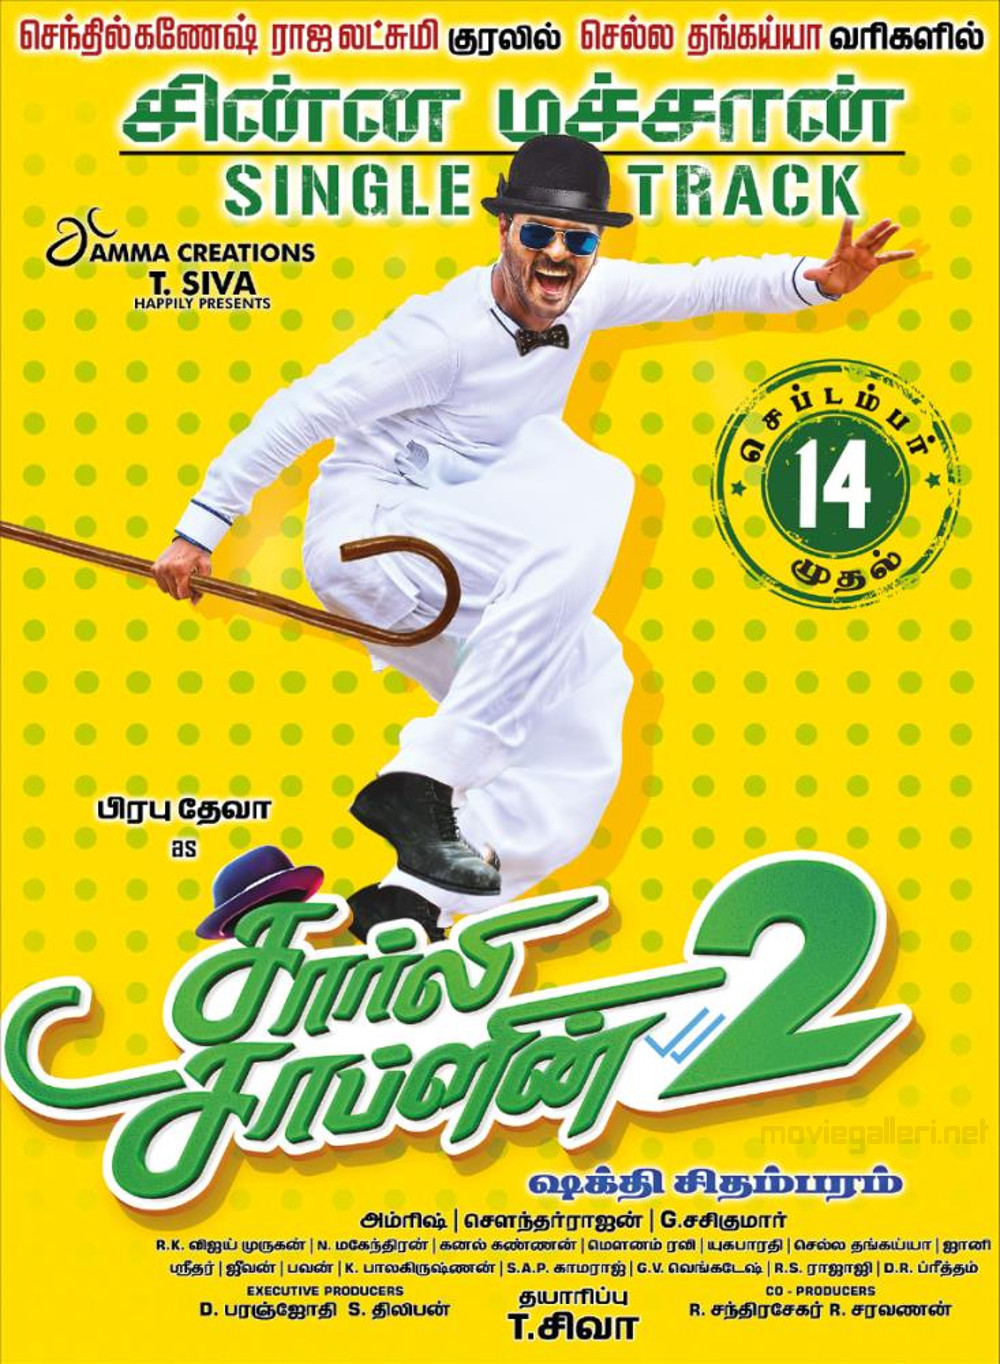 Prabhu Deva Charlie Chaplin 2 Movie Single Track Release Poster